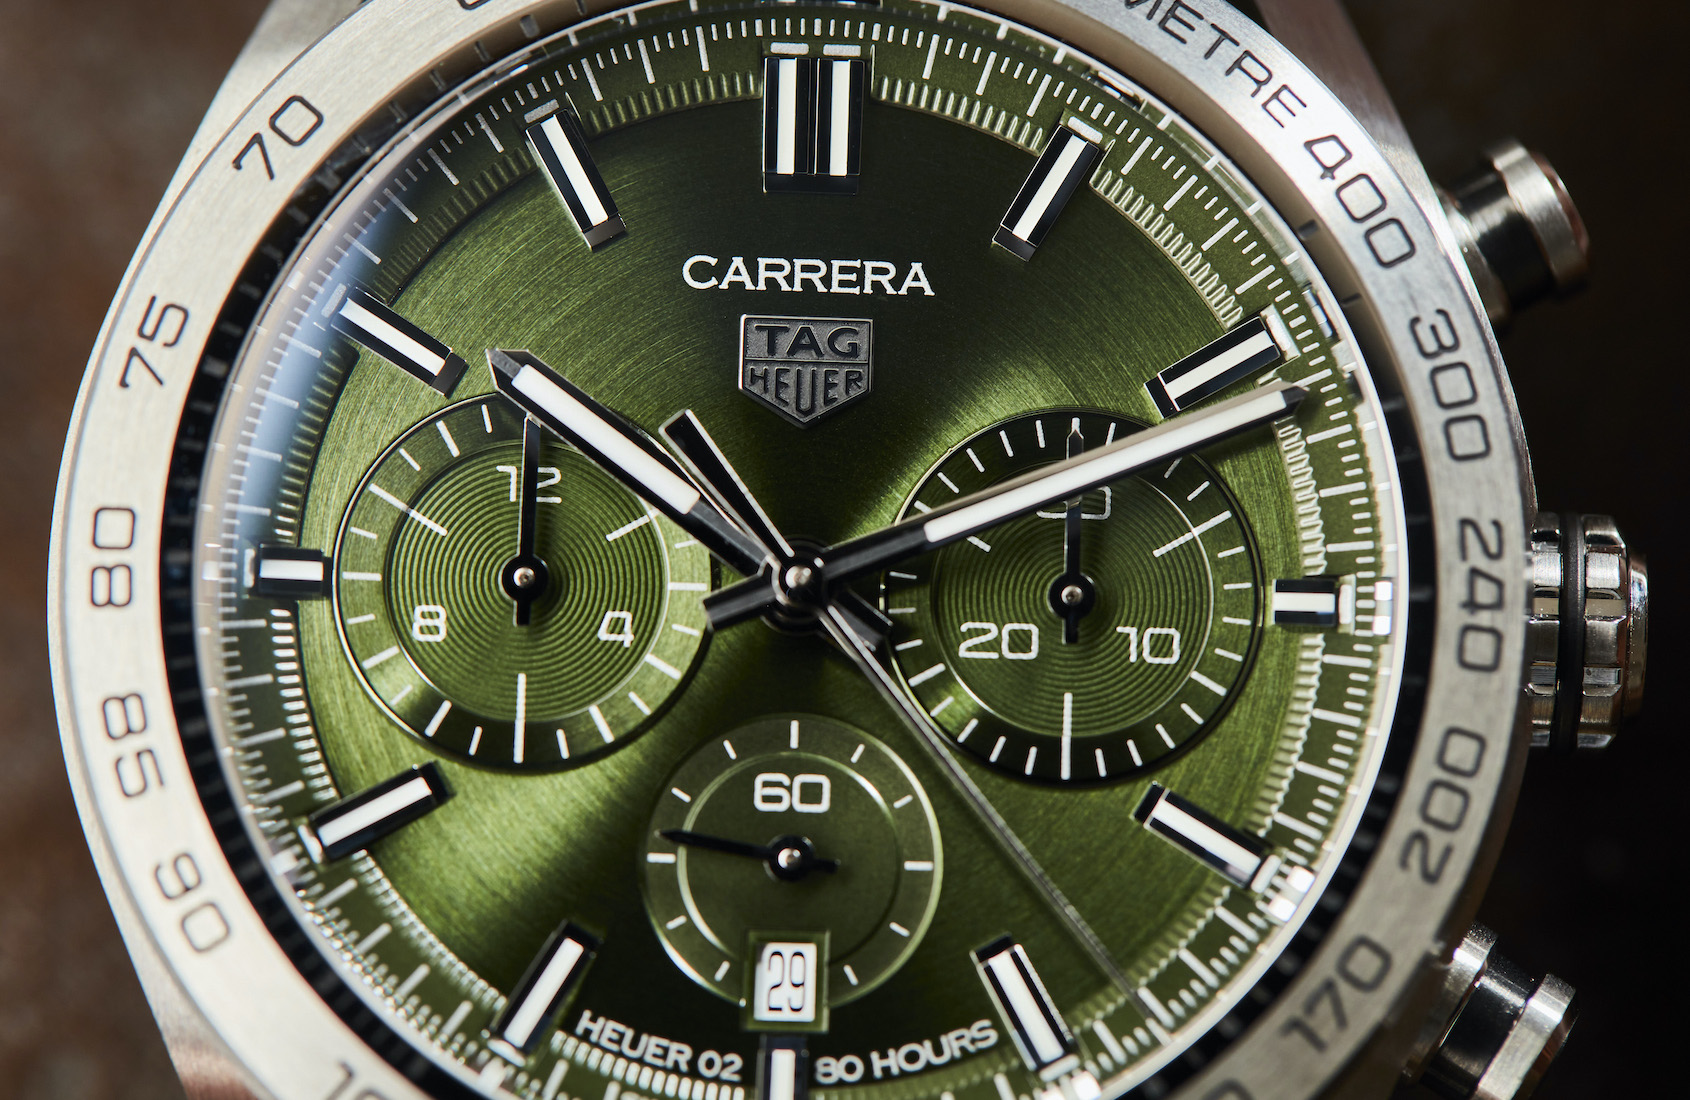 TAG Heuer Carrera Sport Chronograph collection